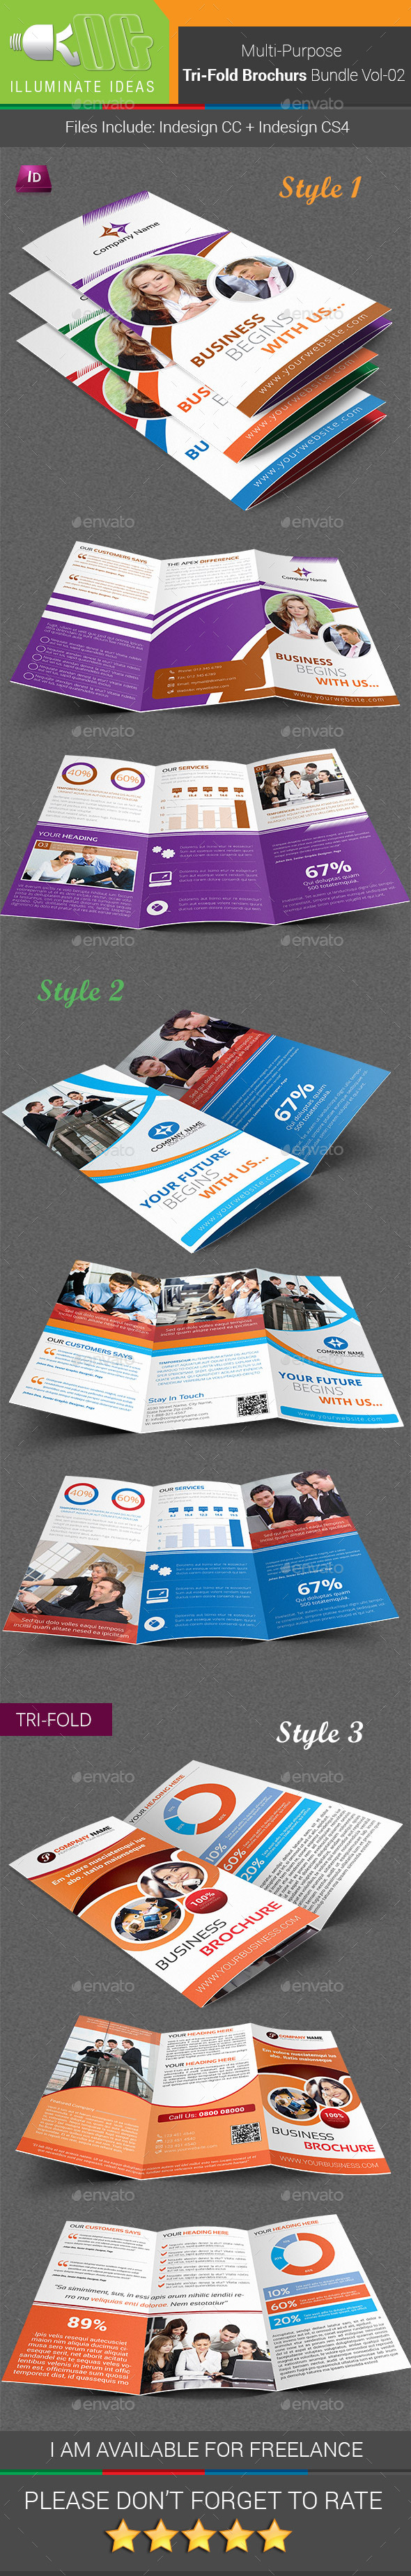 Multipurpose Tri-Fold Brochures Bundle Vol-02 - Corporate Brochures